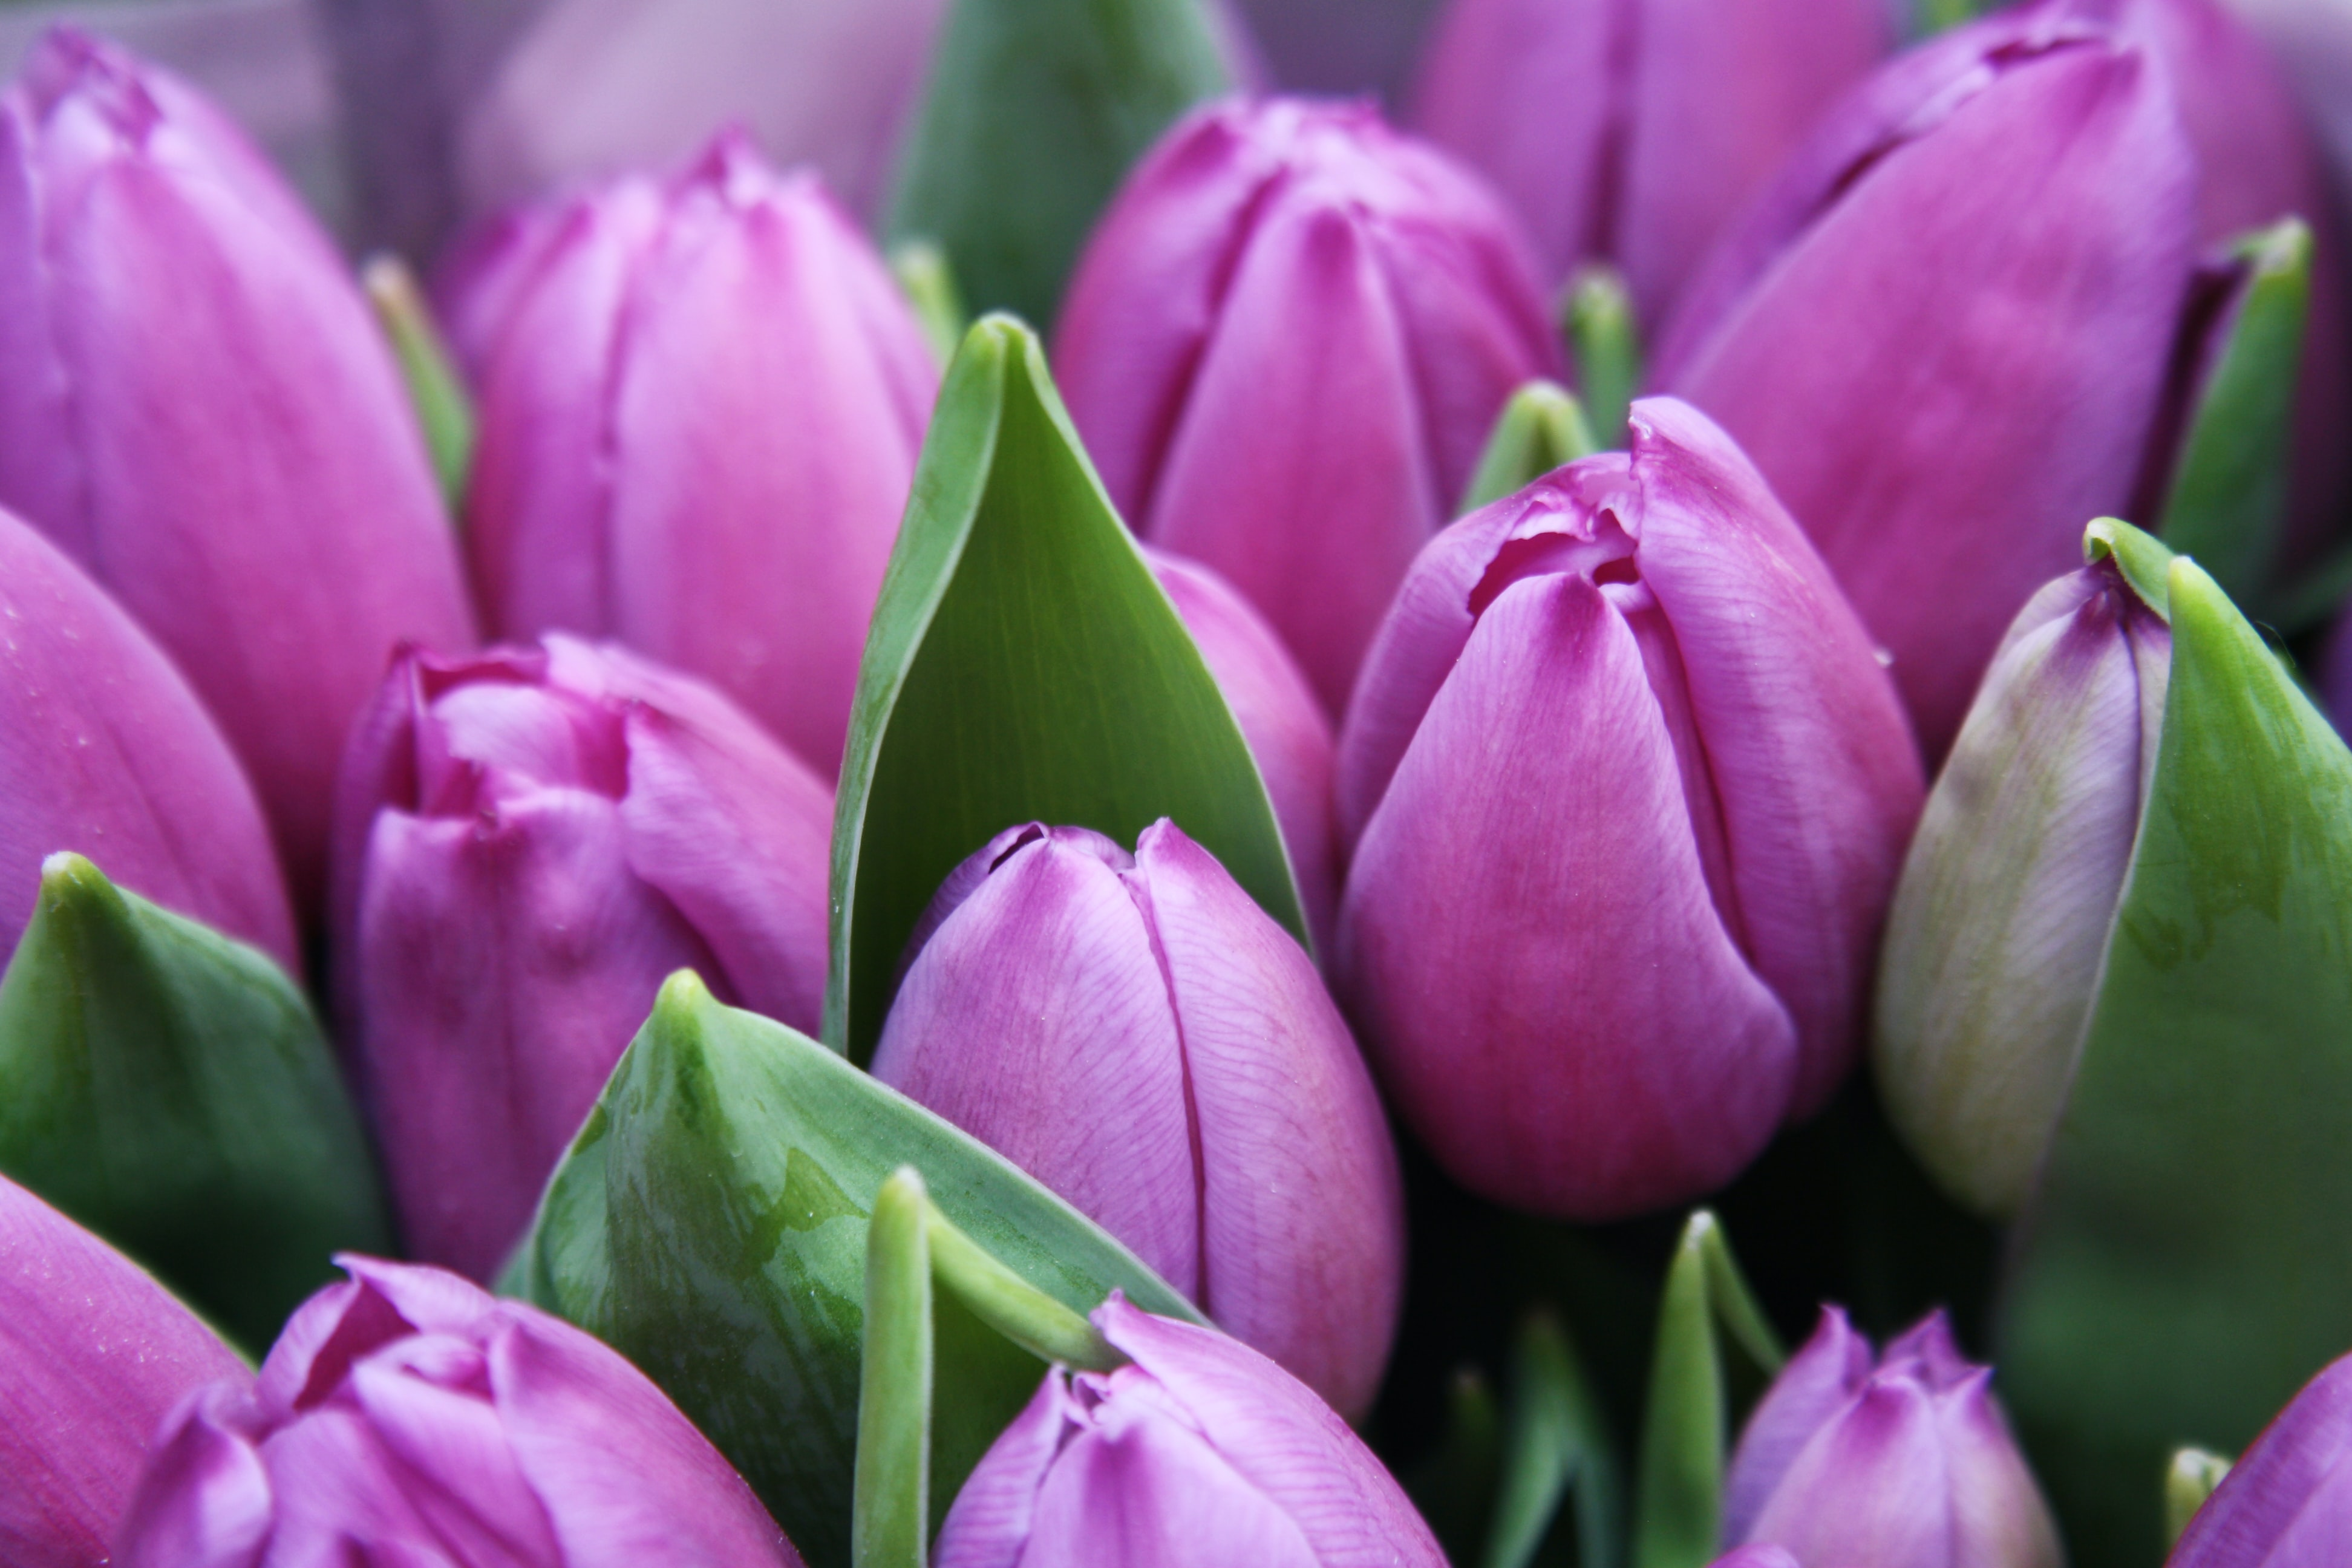 close-up photography of purple tulip flowers